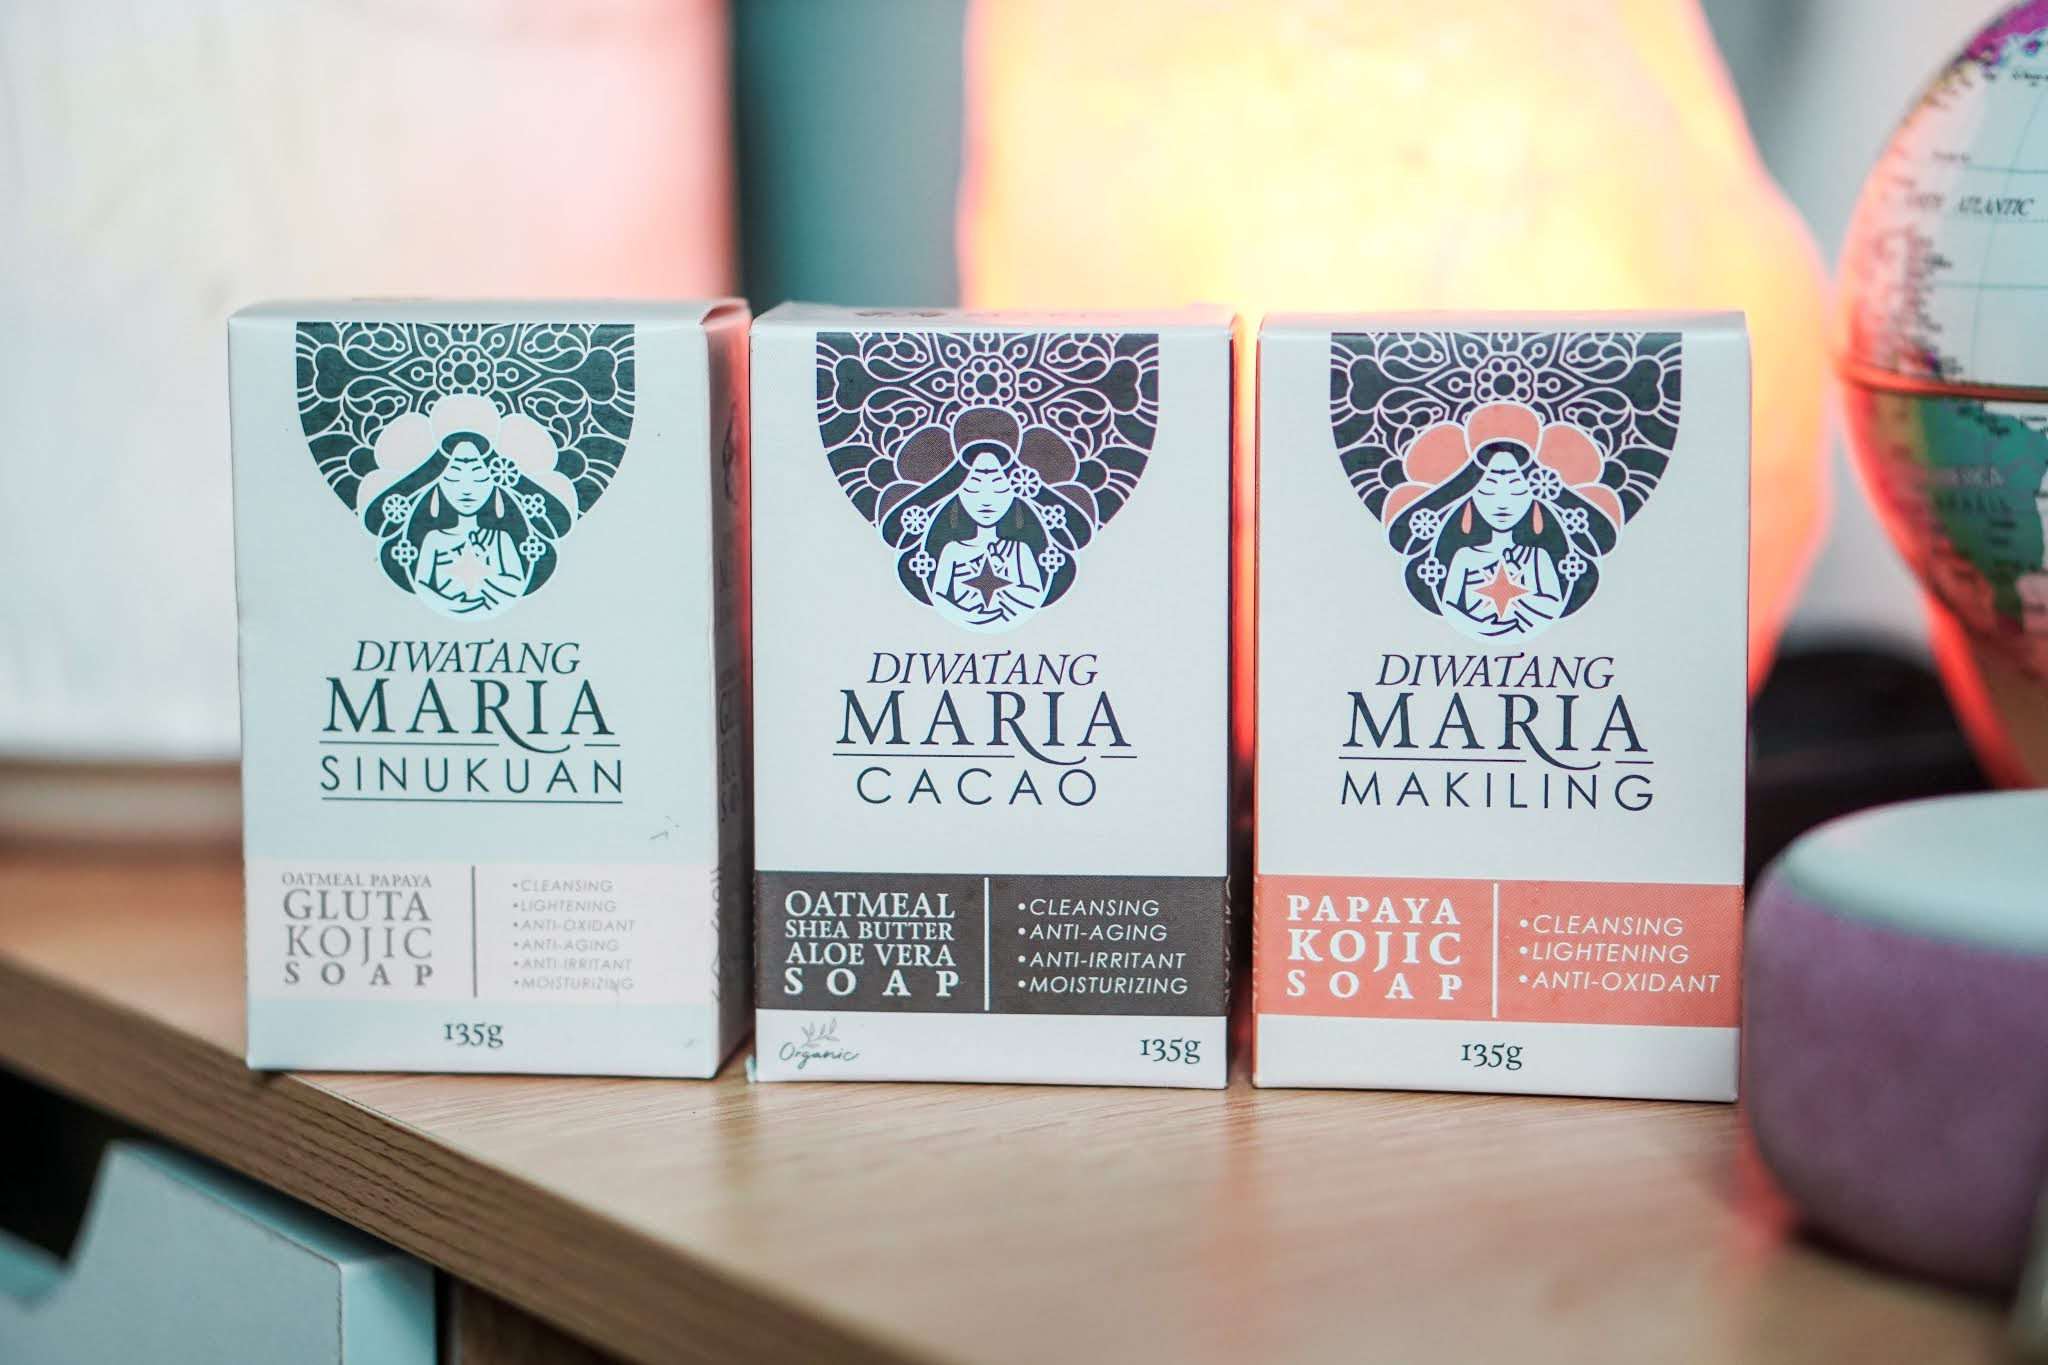 Diwatang Maria Soaps for a healthy-looking skin, organically.